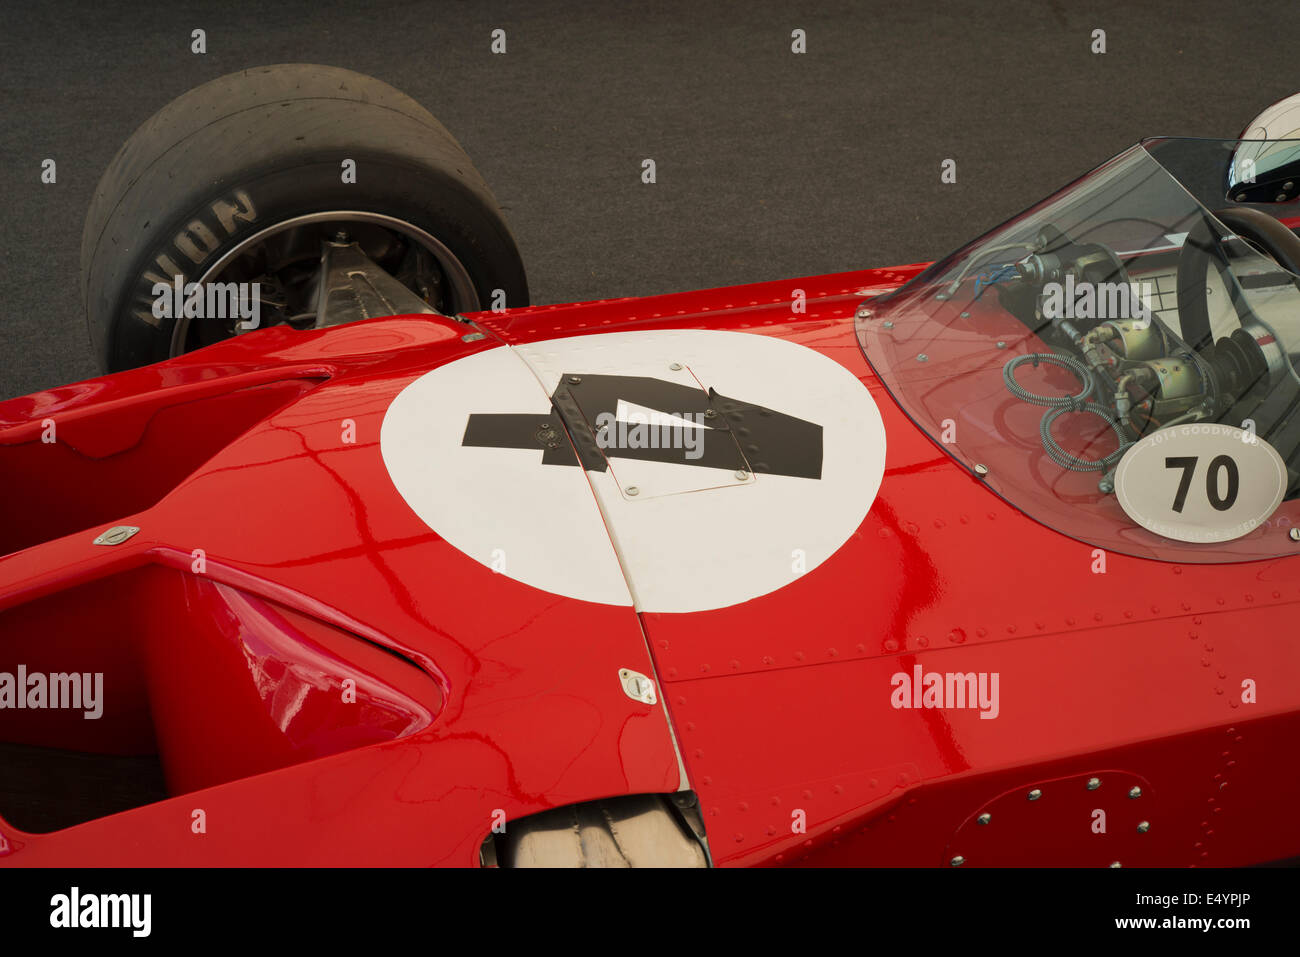 Number 4 on a red Formula 1 race car. - Stock Image